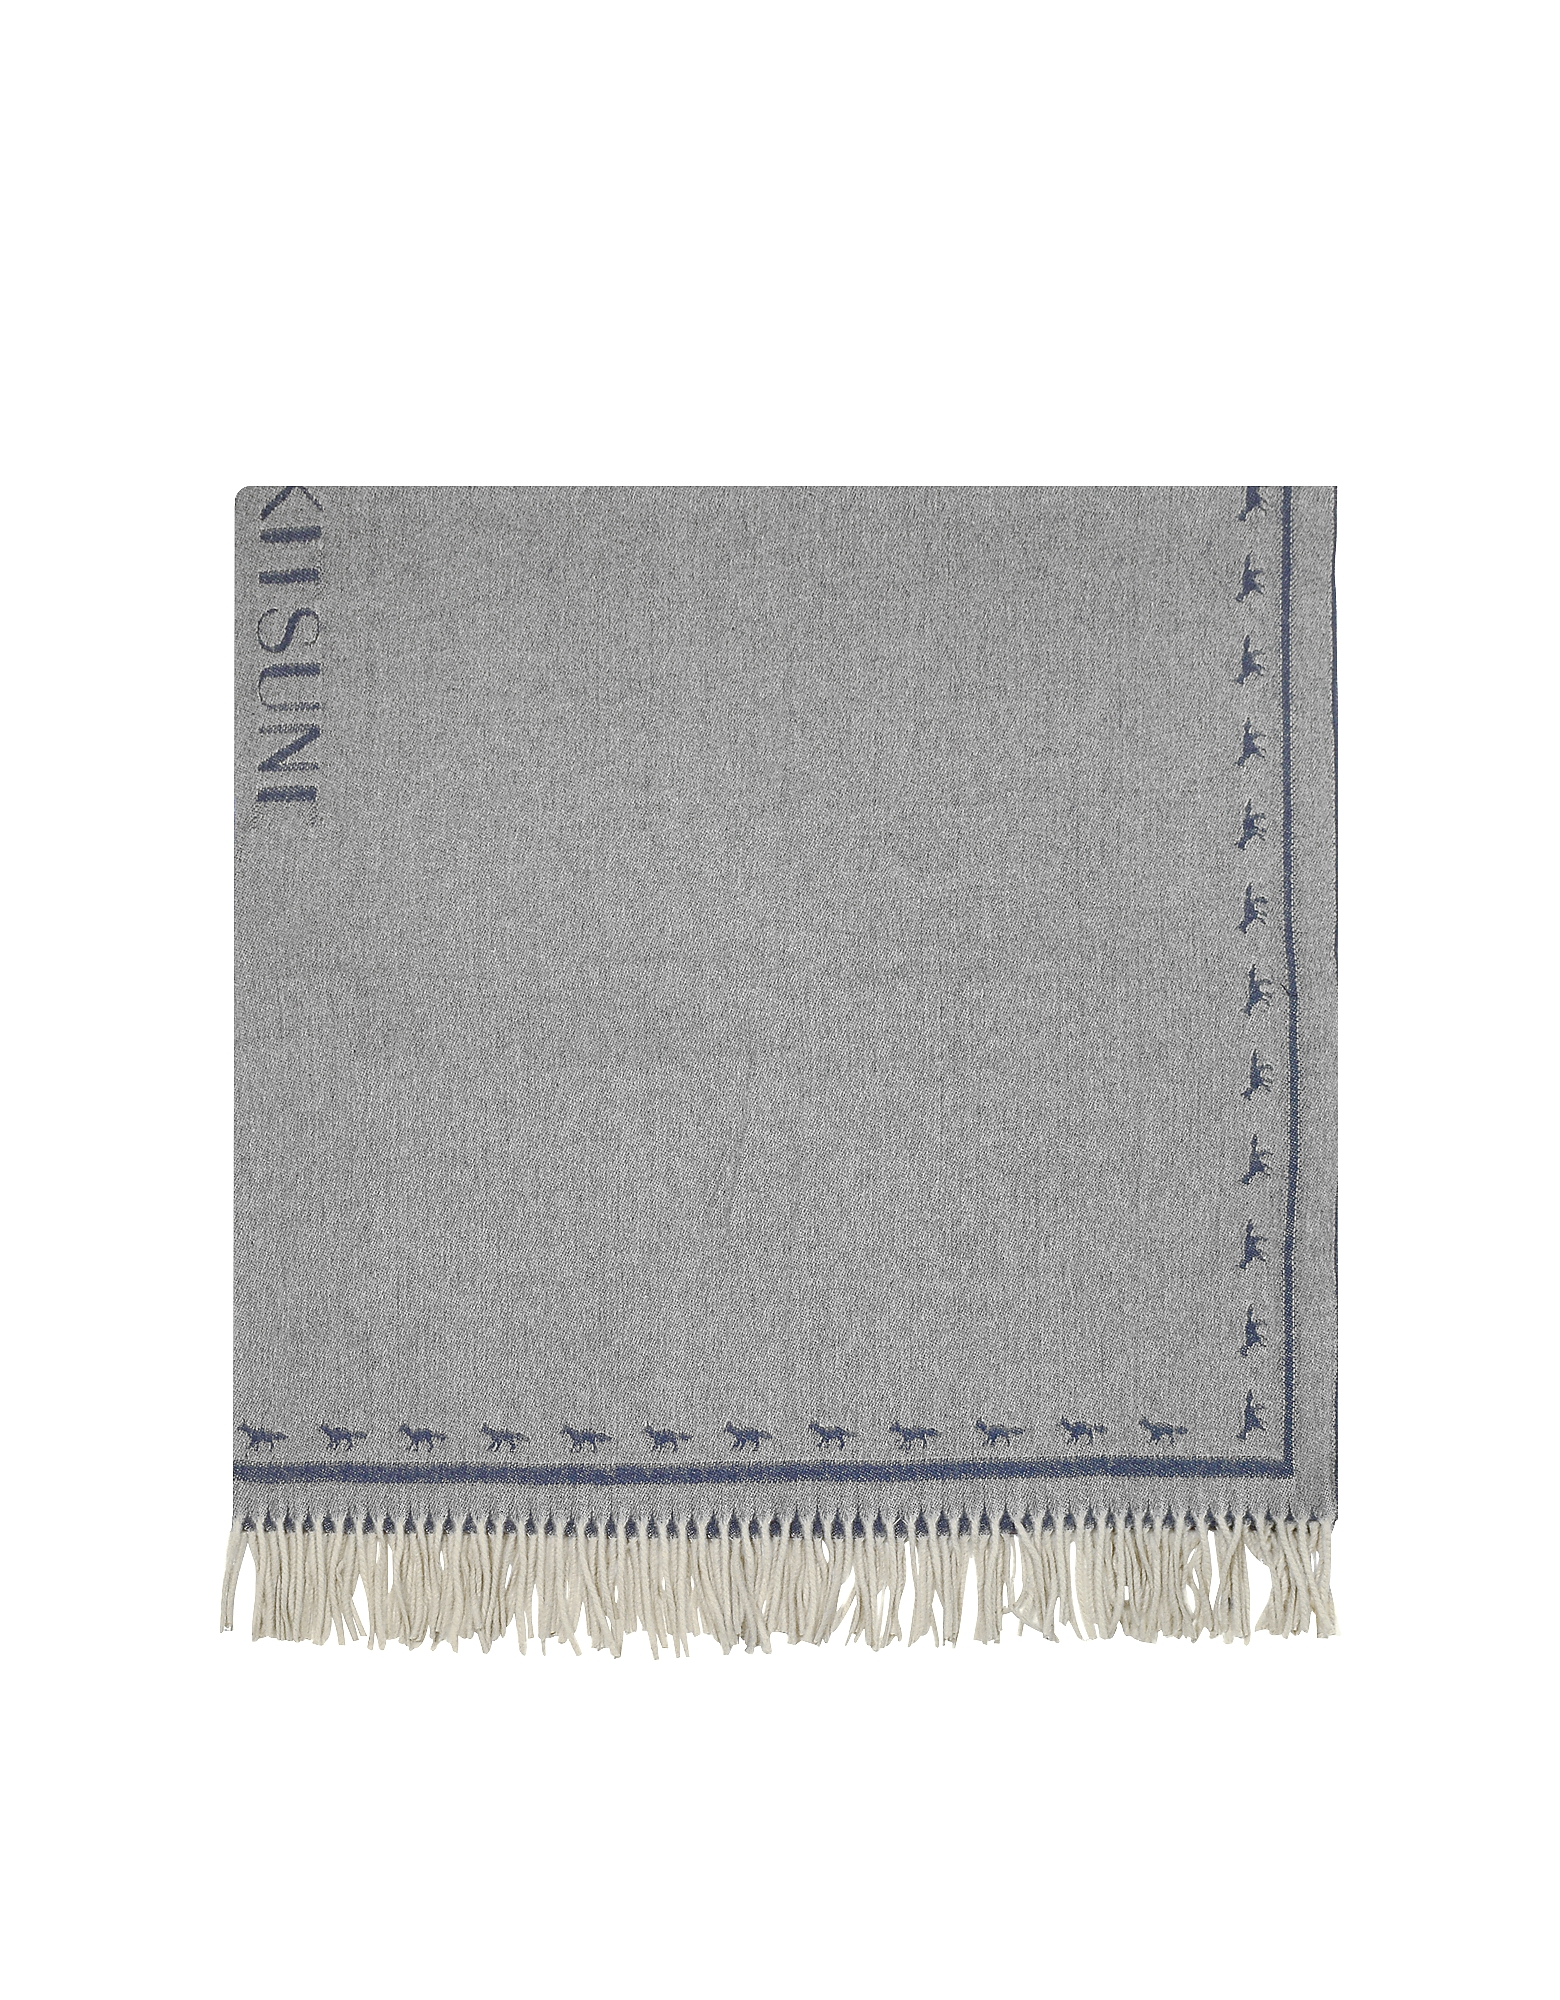 Maison Kitsuné Long Scarves, Navy and Camel Fox Plaid Wool Wrap